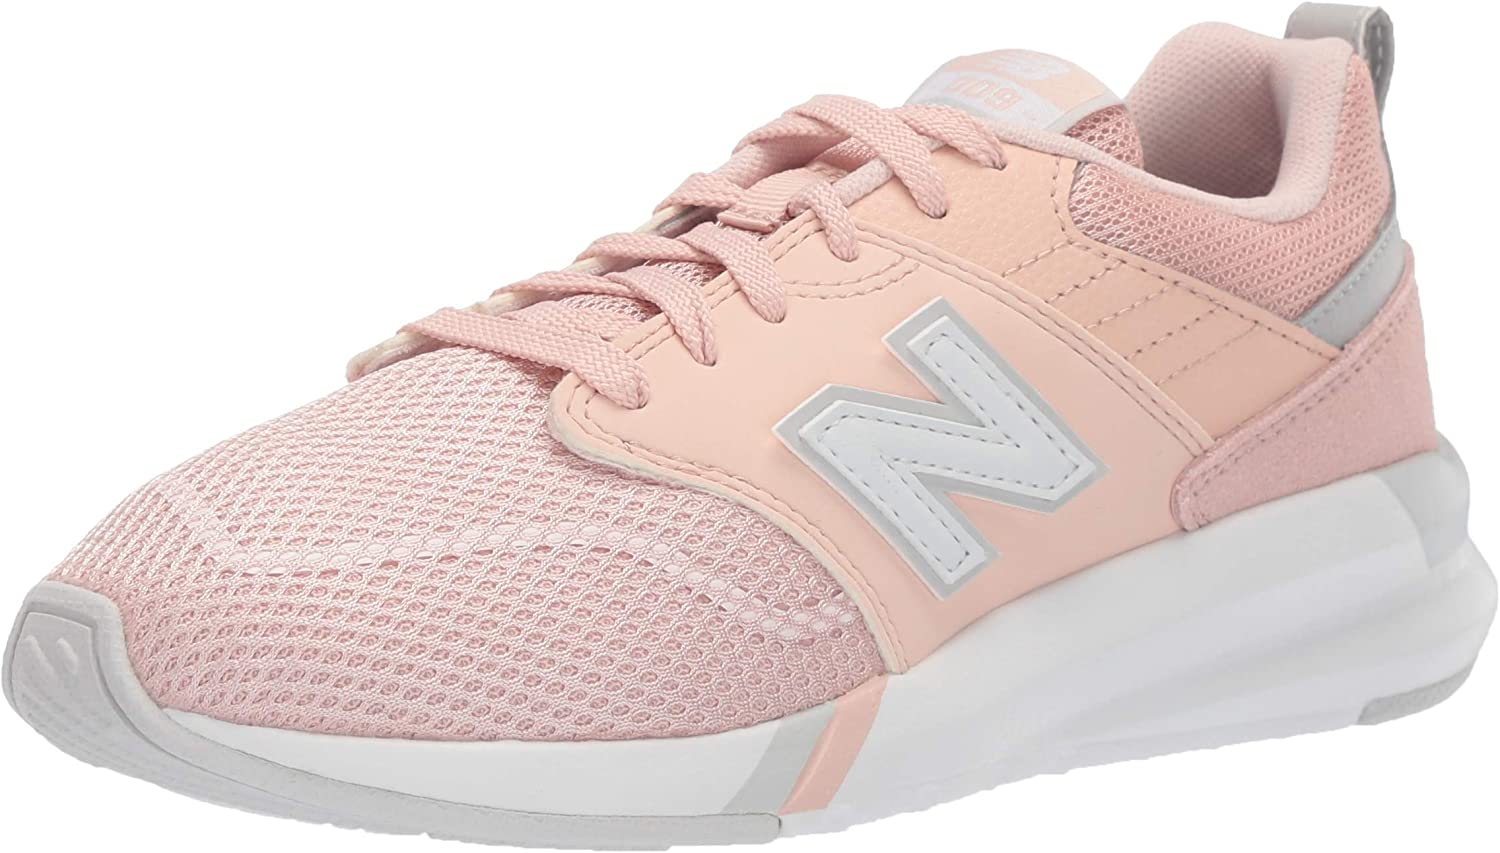 Mount Bank donde quiera bandera nacional  Amazon.com | New Balance Women's 009 V1 Sneaker | Fashion Sneakers